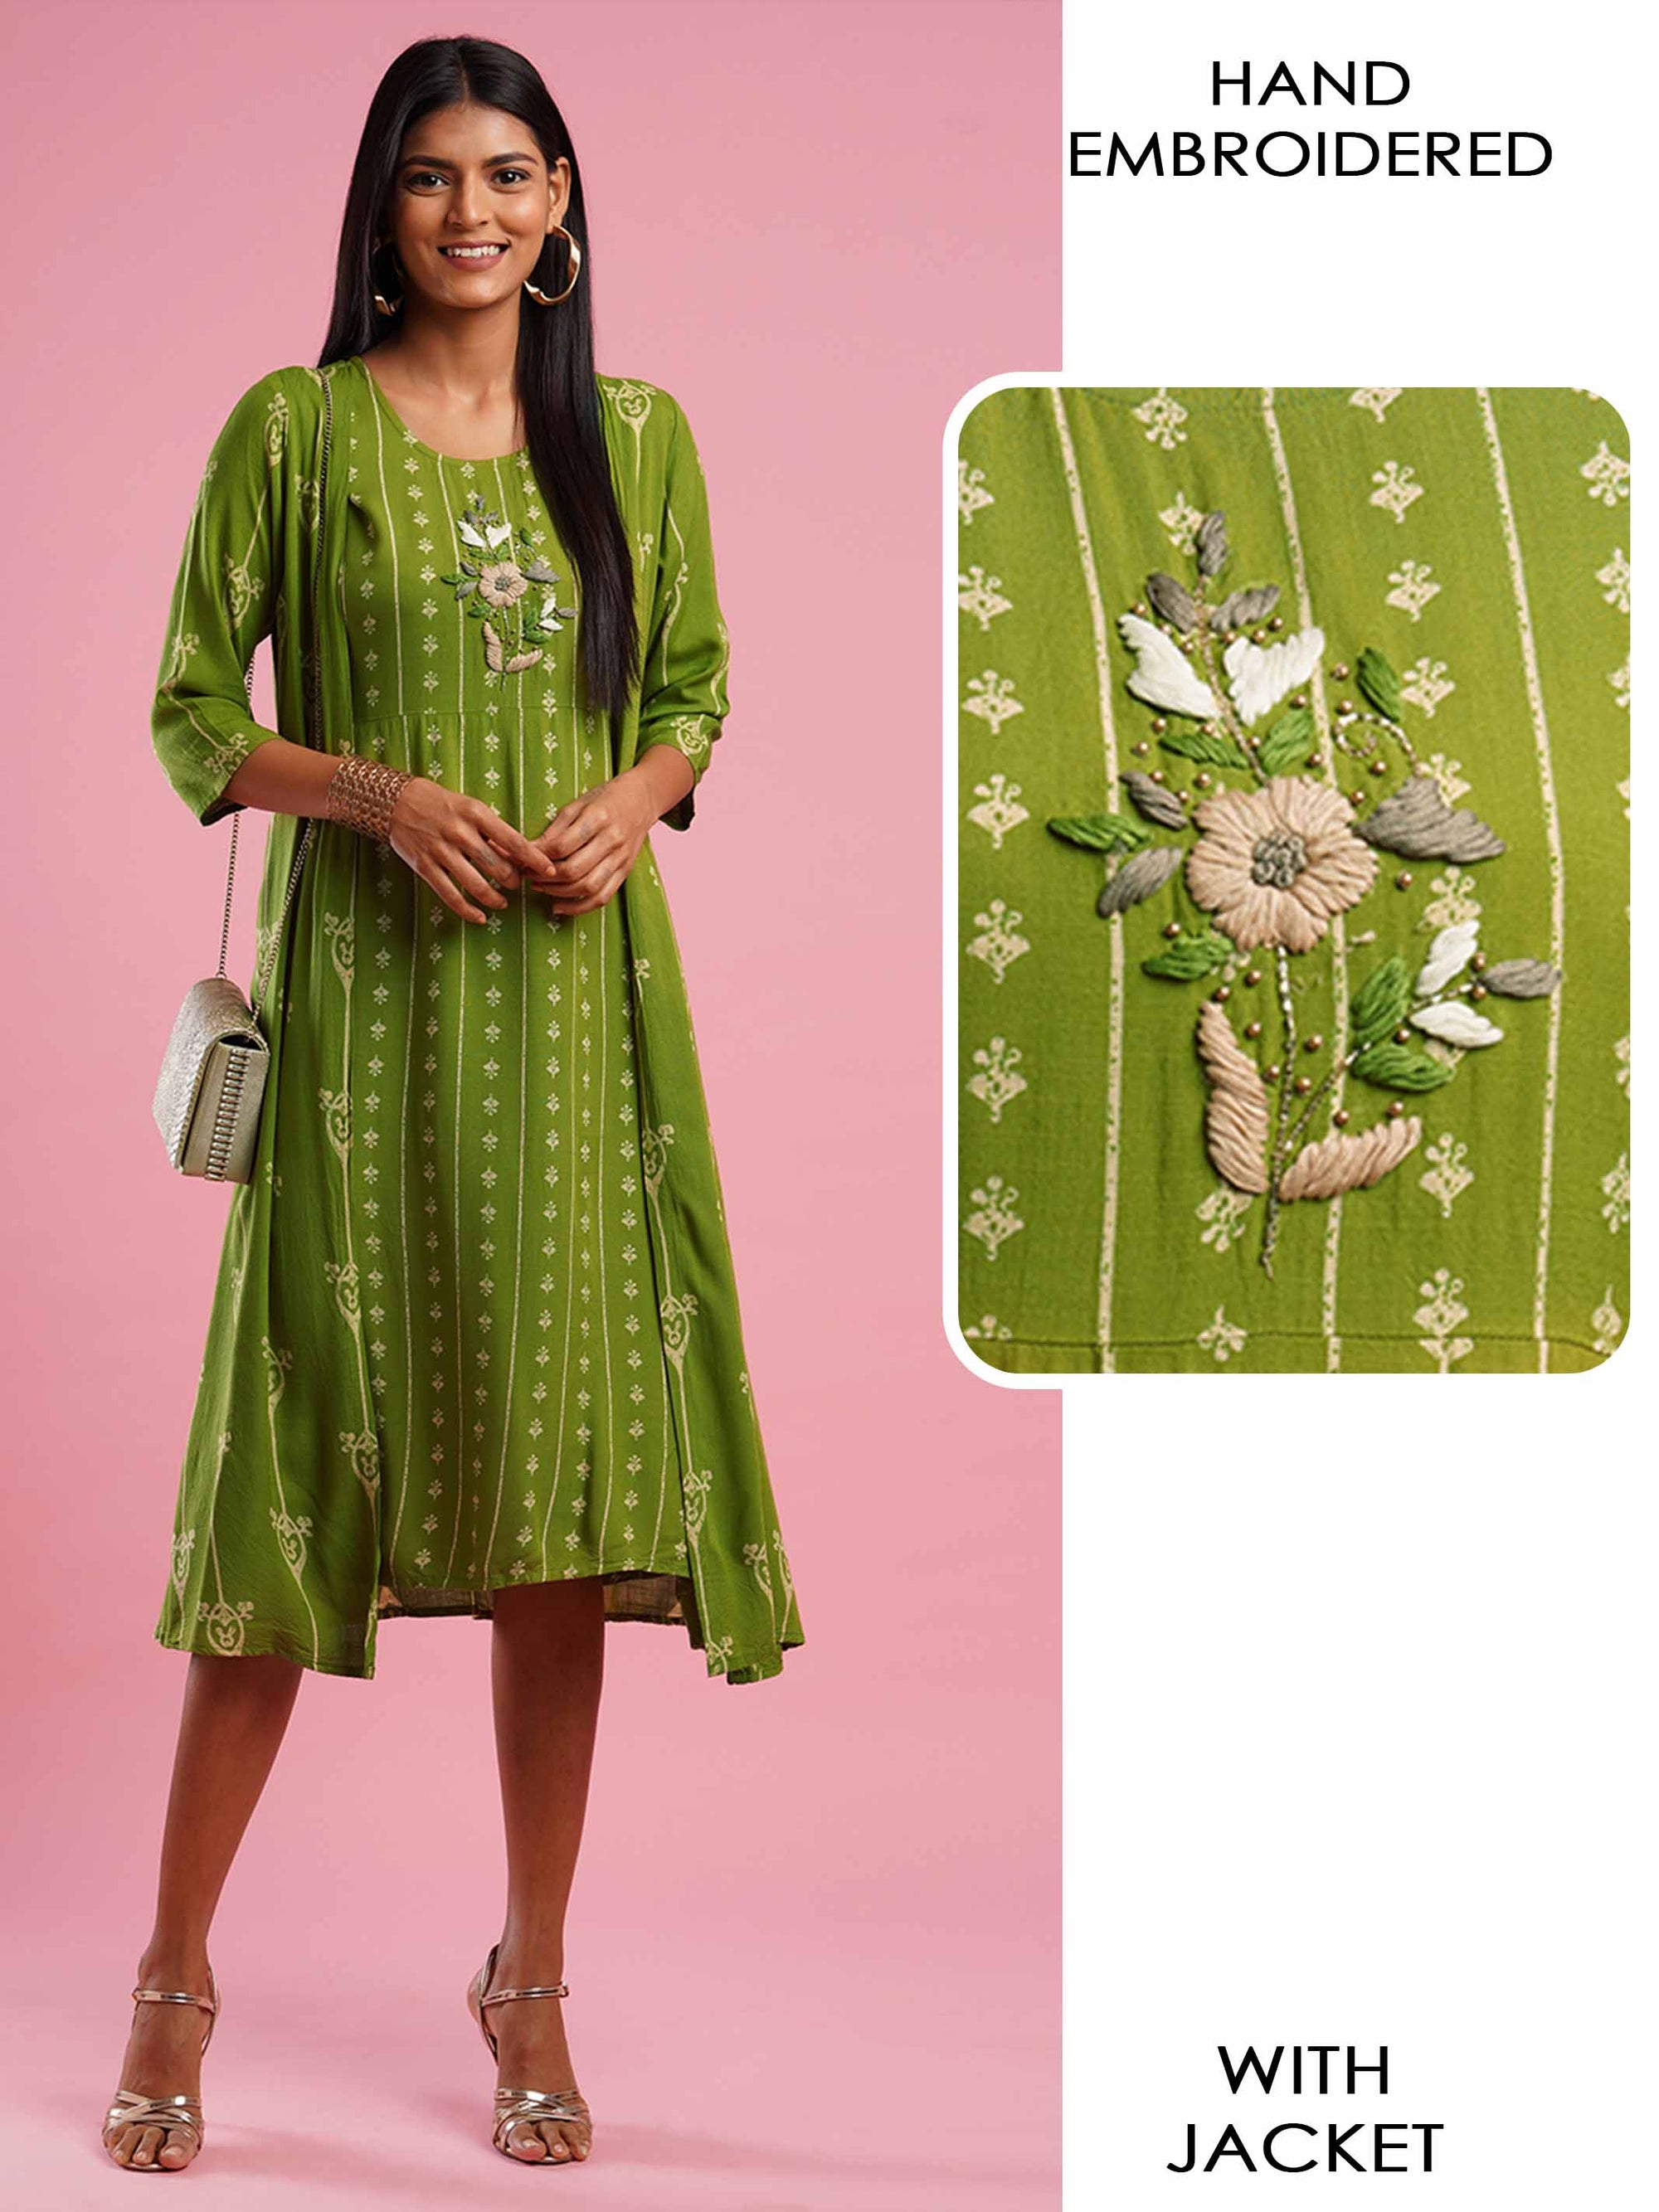 Ethnic Printed & Floral Hand Embroidered Kurta with Printed Long Jacket - Green